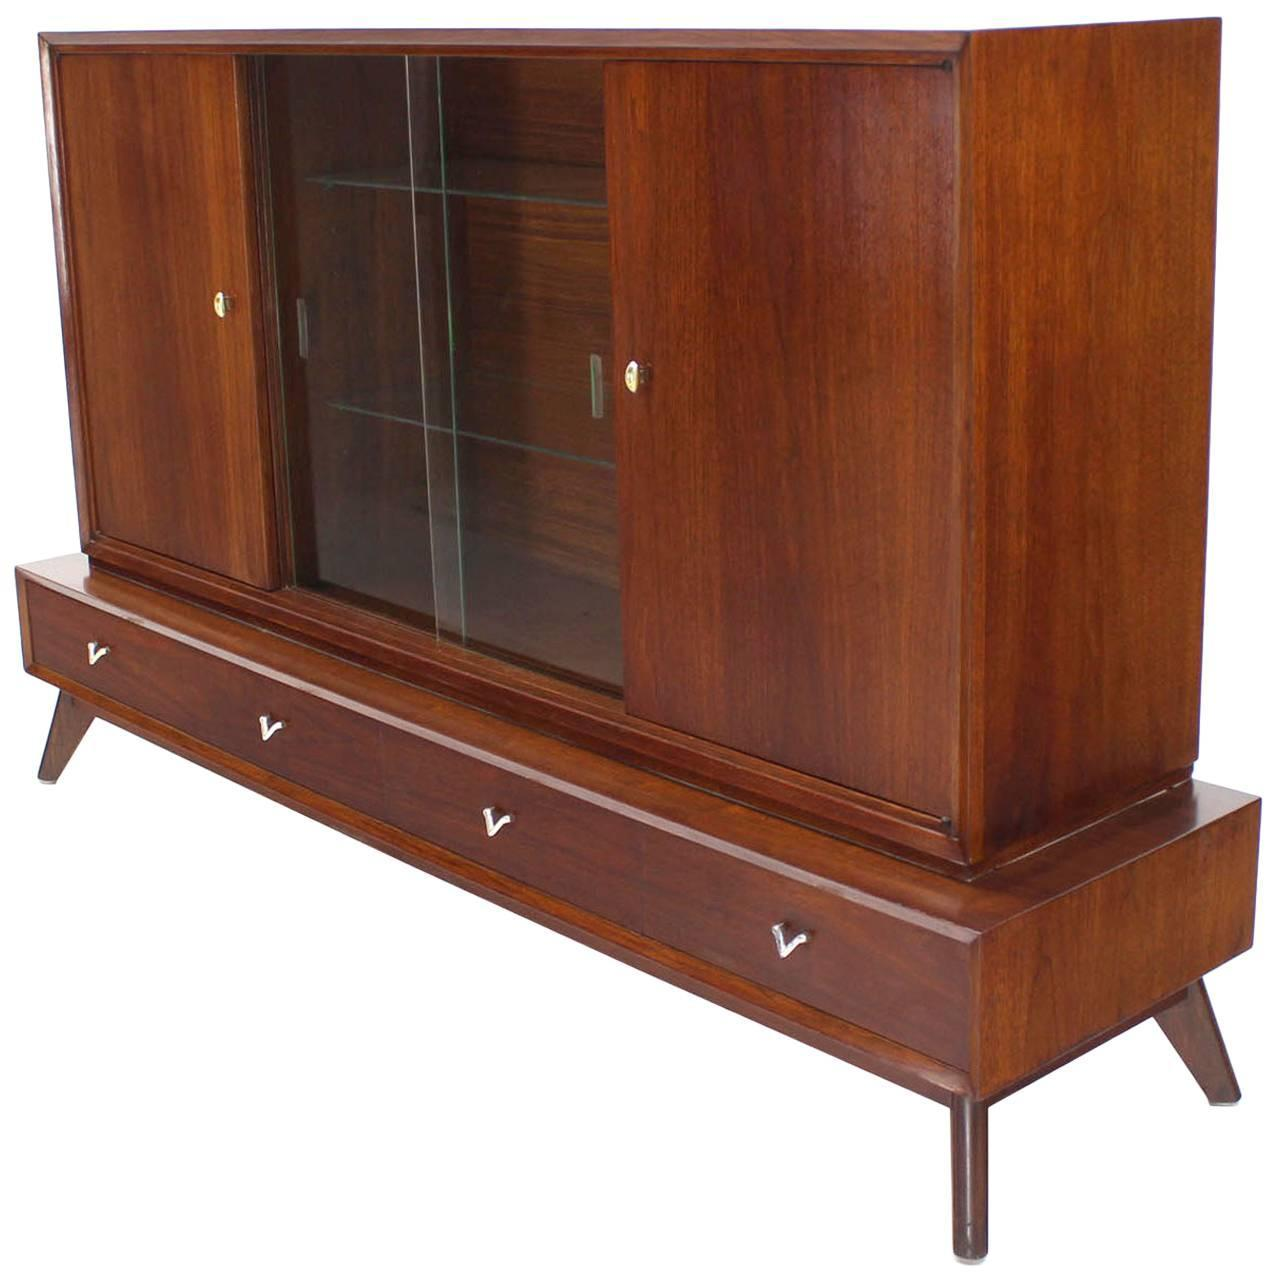 Genial Two Part Mid Century Modern Walnut Credenza Or Low China Cabinet For Sale  At 1stdibs